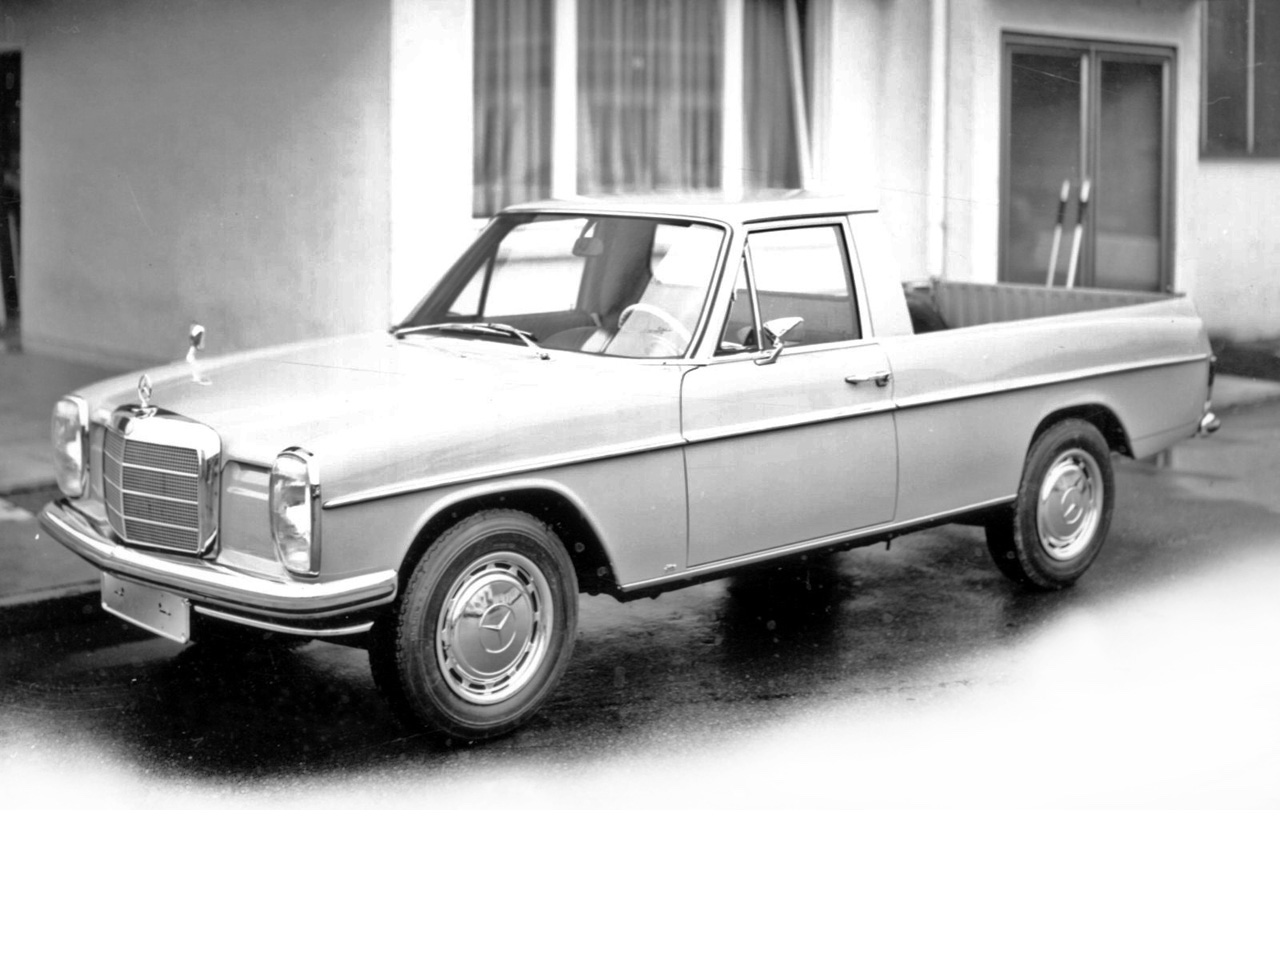 Mercedes 220d pickup la primera pick up de mercedes benz for Mercedes benz metairie la